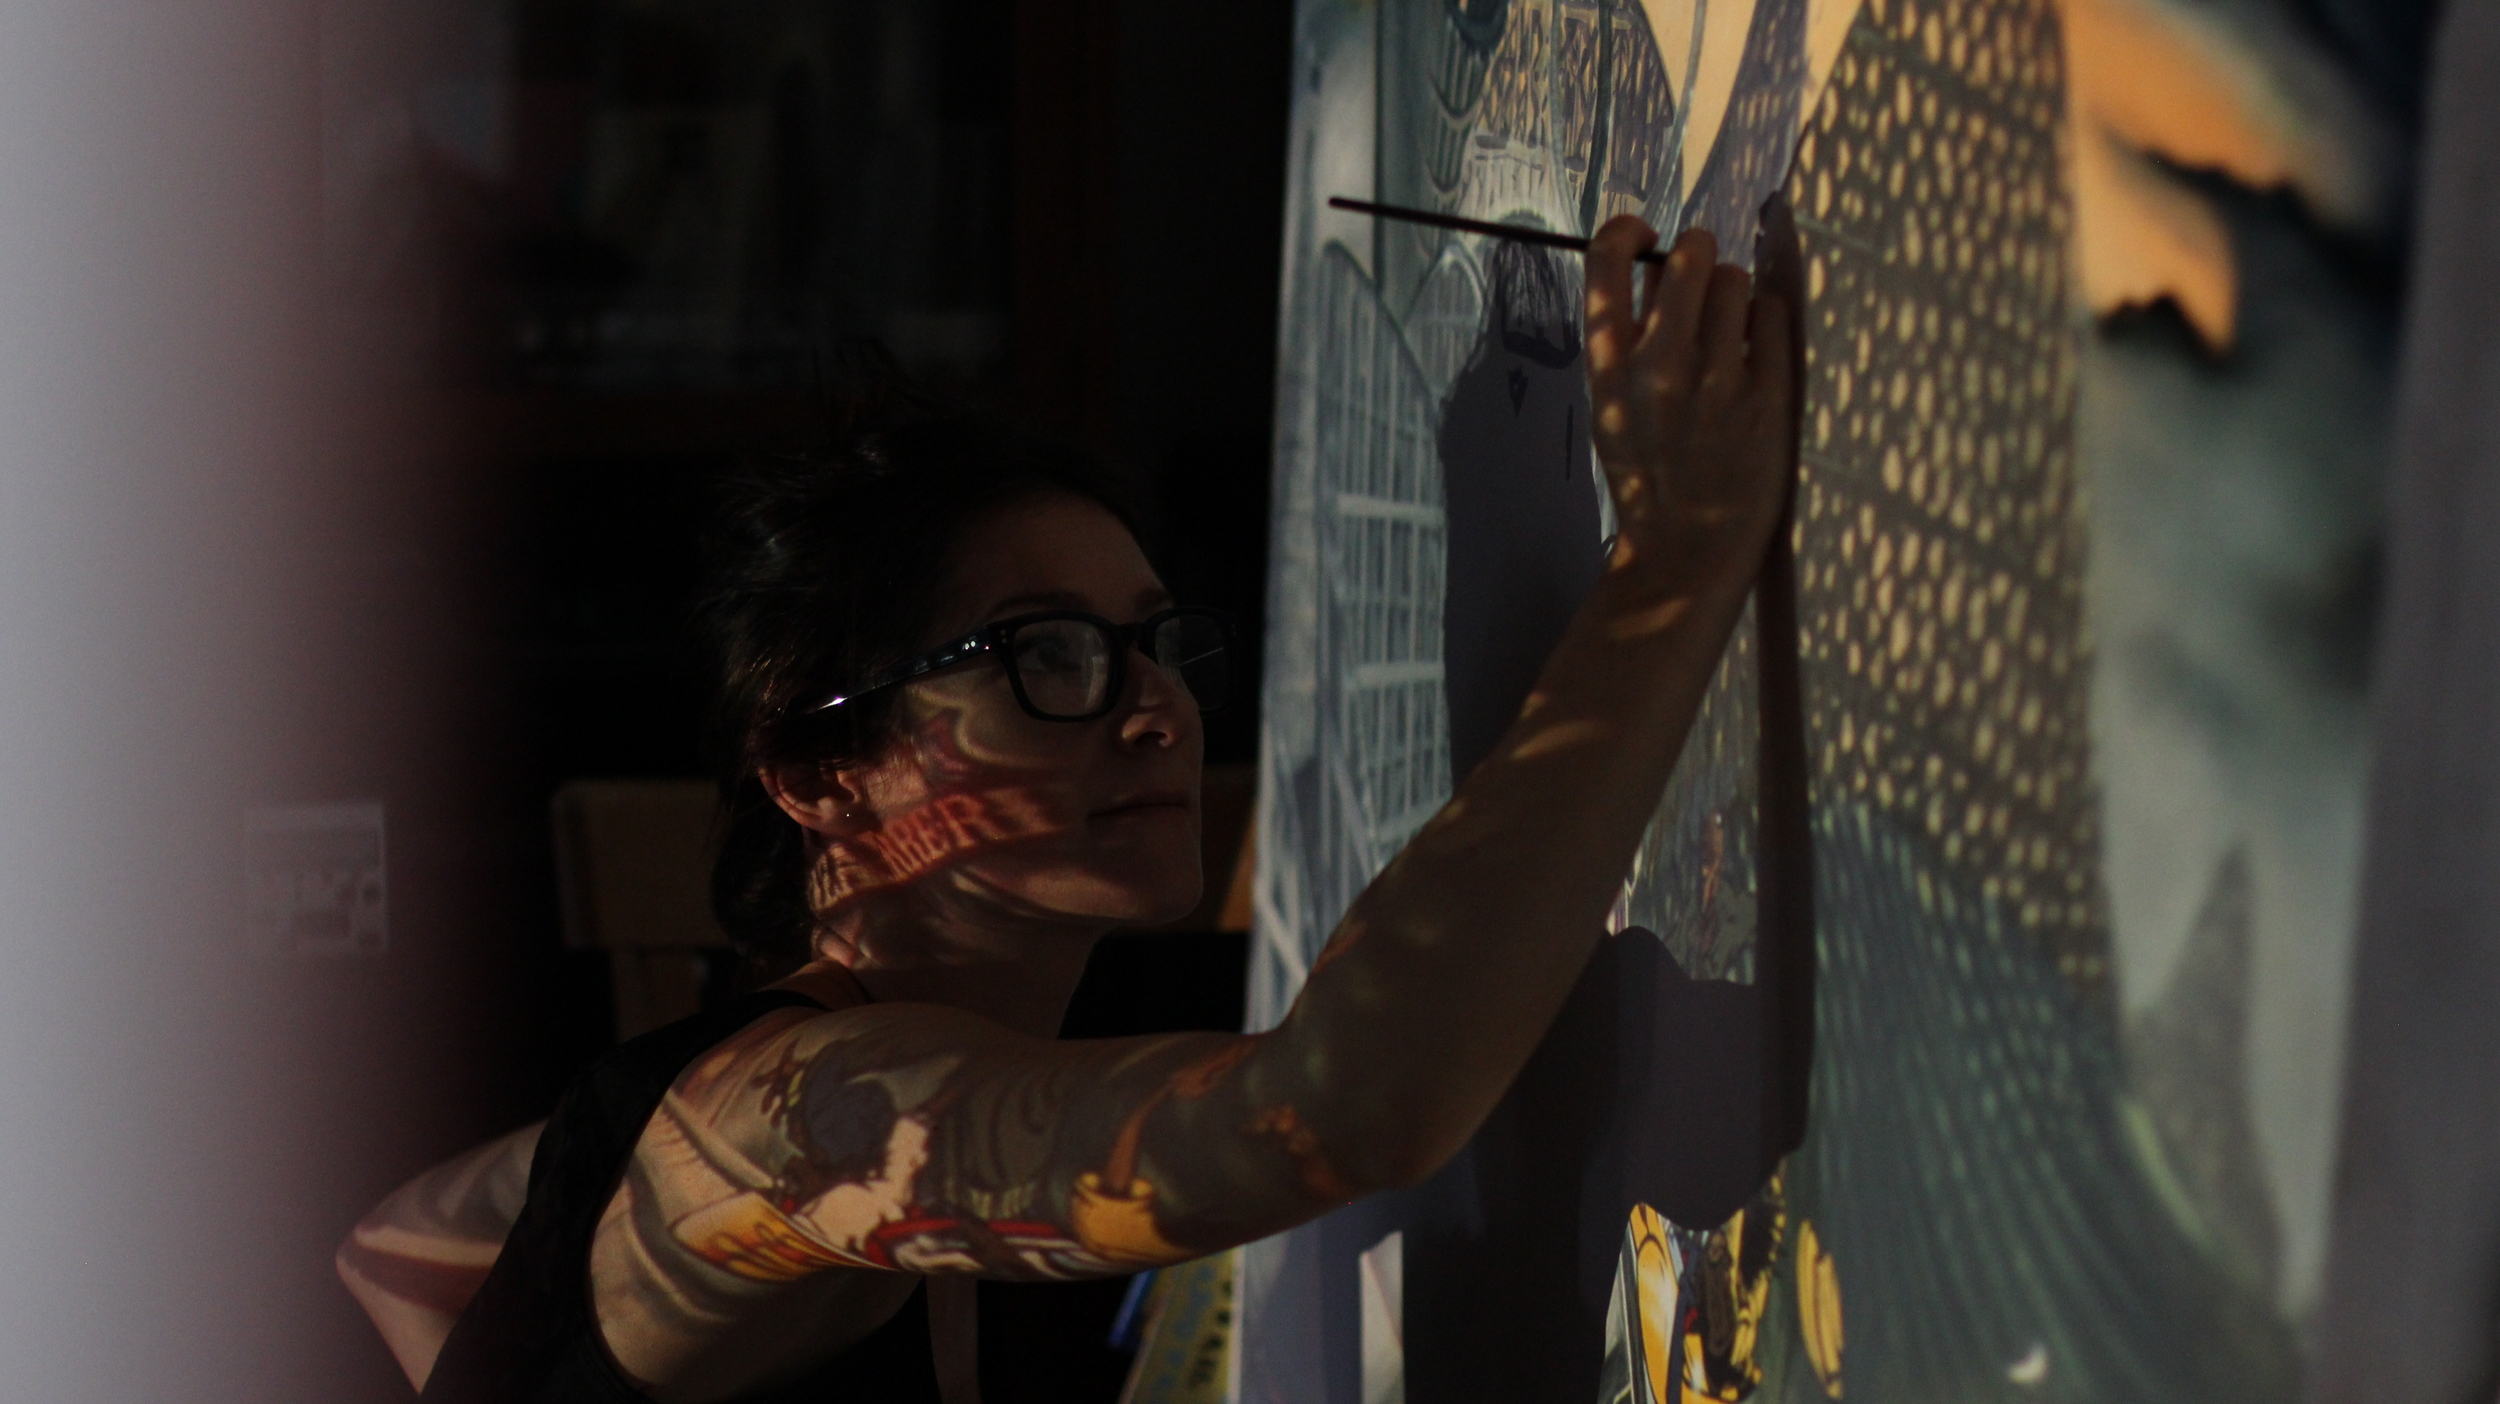 Me working on a projection illustration for a good friend. It looks like I'm tattooed!